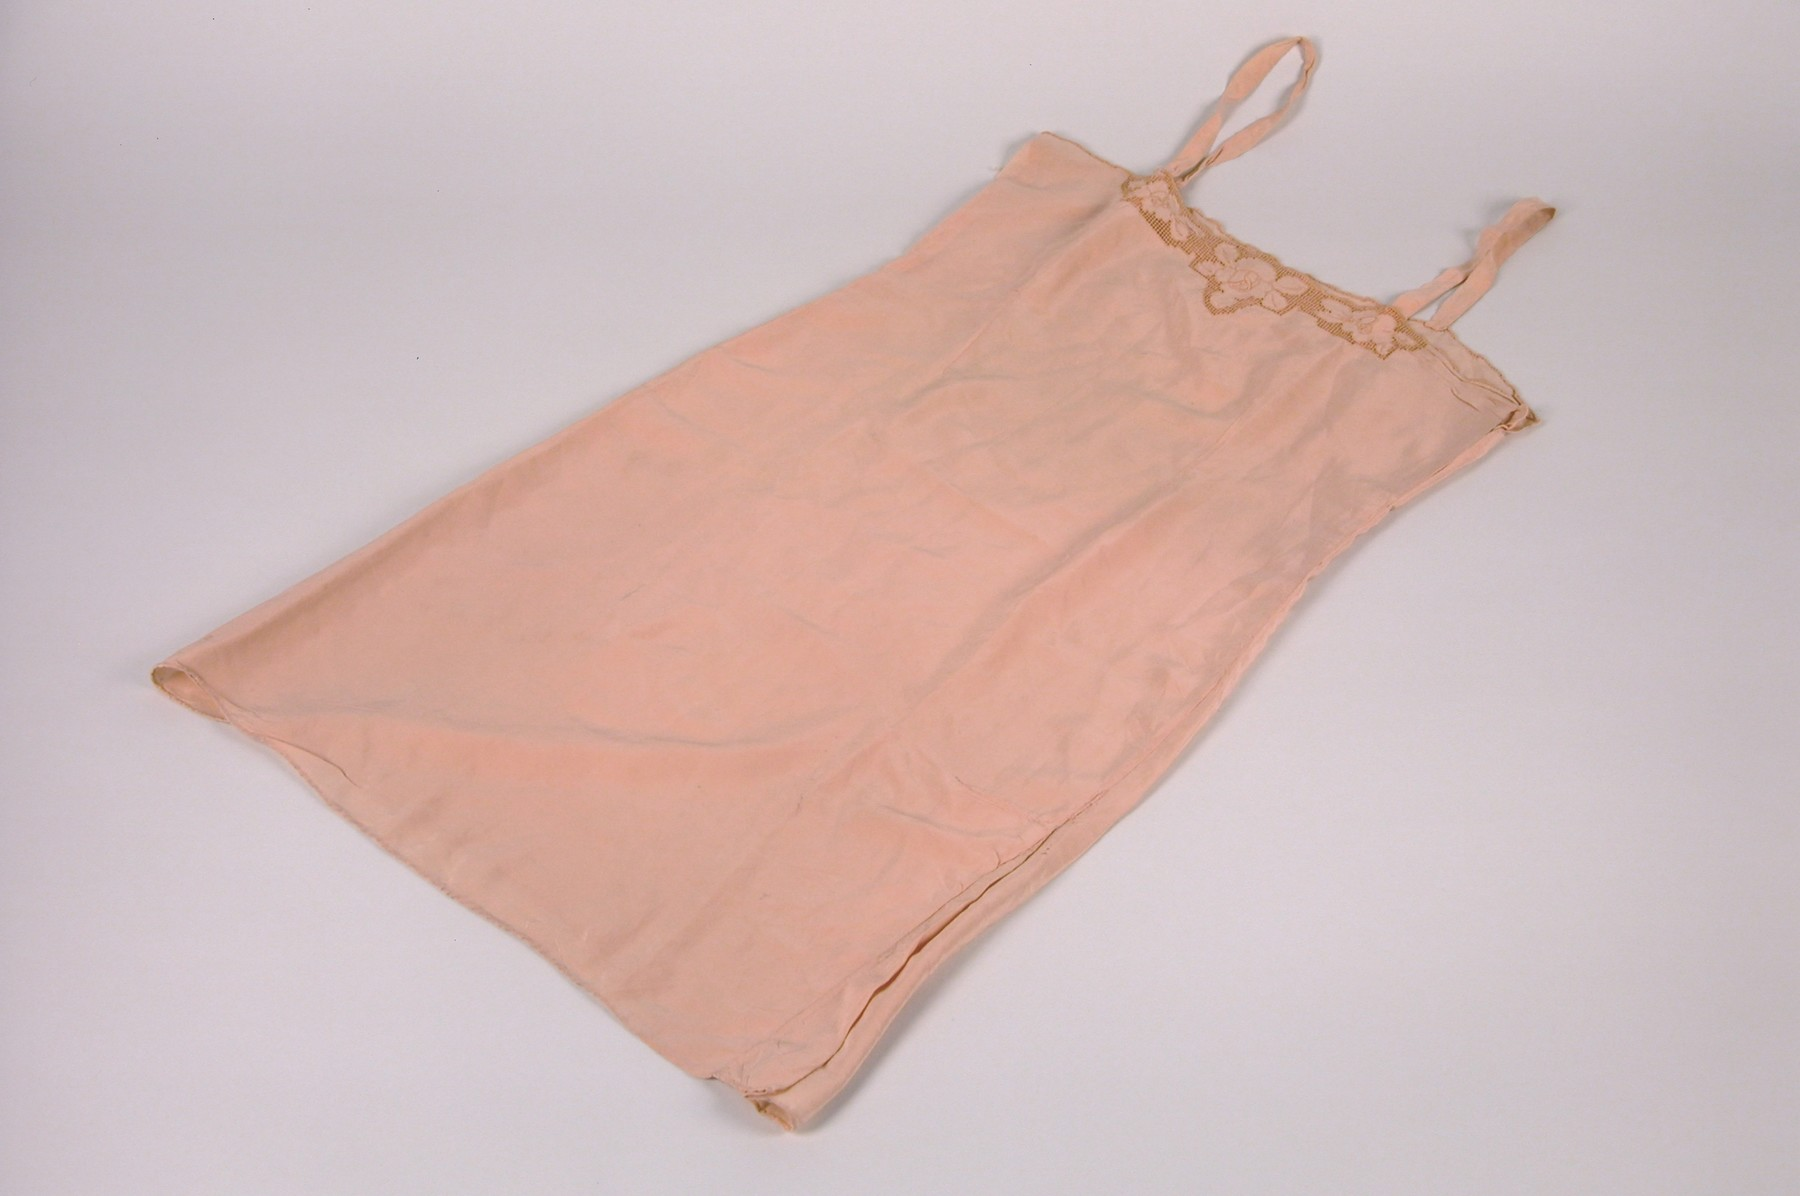 A chemise belonging to Anna Ilona Gondos, that was taken with her when she left Budapest on the Kasztner rescue train.    The chemise was part of her trousseau when she married Bela Gondos in 1934.  Anna packed it along with several others on the Kasztner train to Bergen-Belsen.  It later accompanied her to Switzerland and, ultimately, to the U.S.